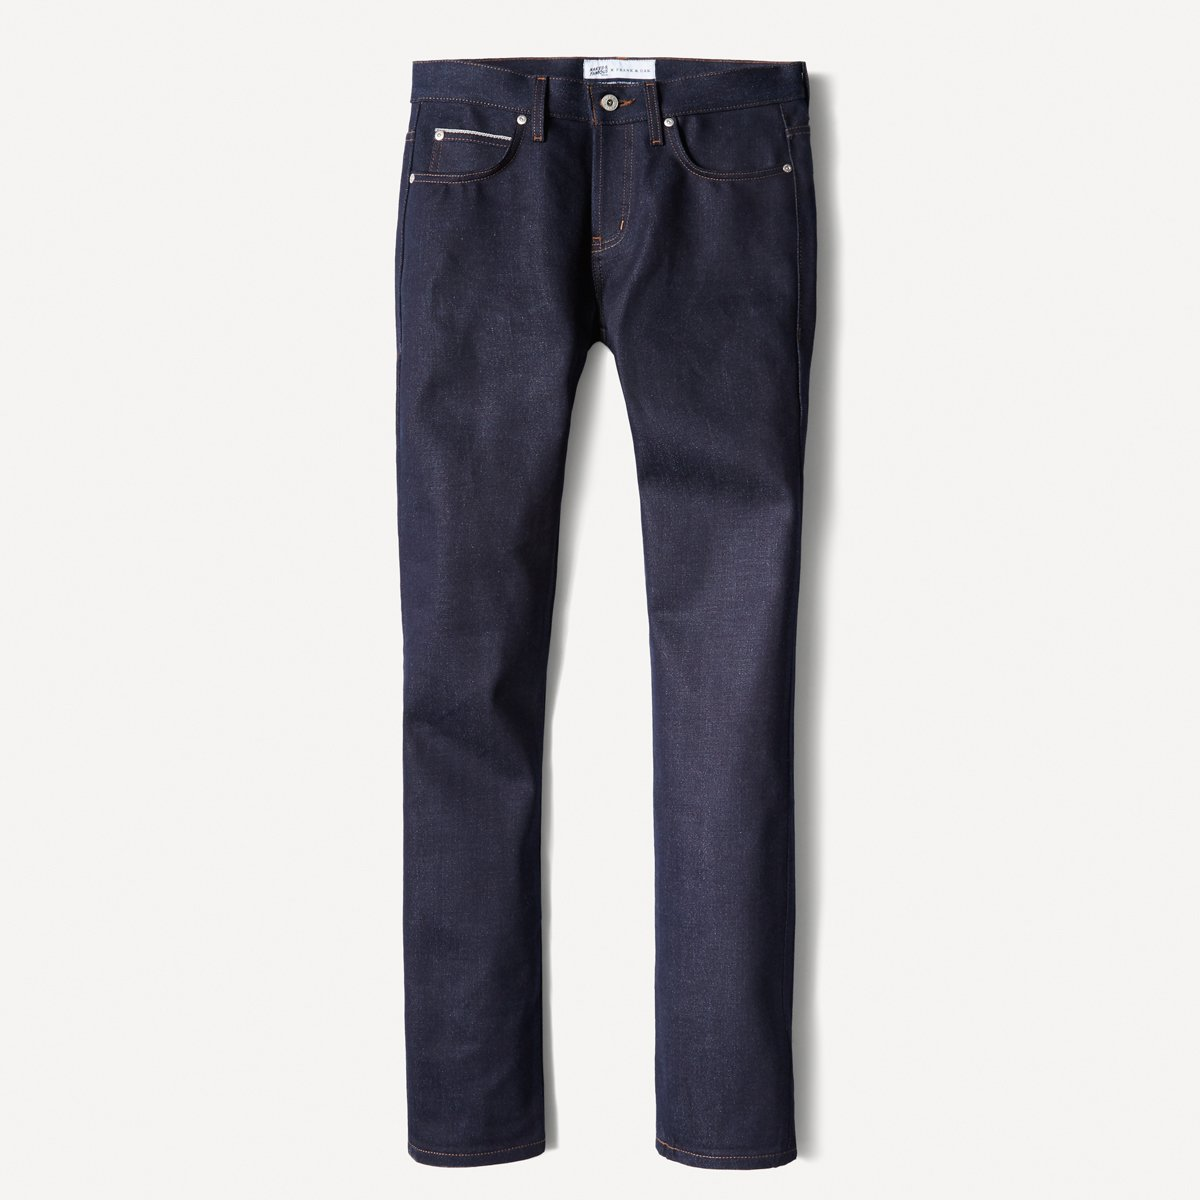 Naked & Famous x Frank & Oak Tapered Selvedge Denim in Indigo